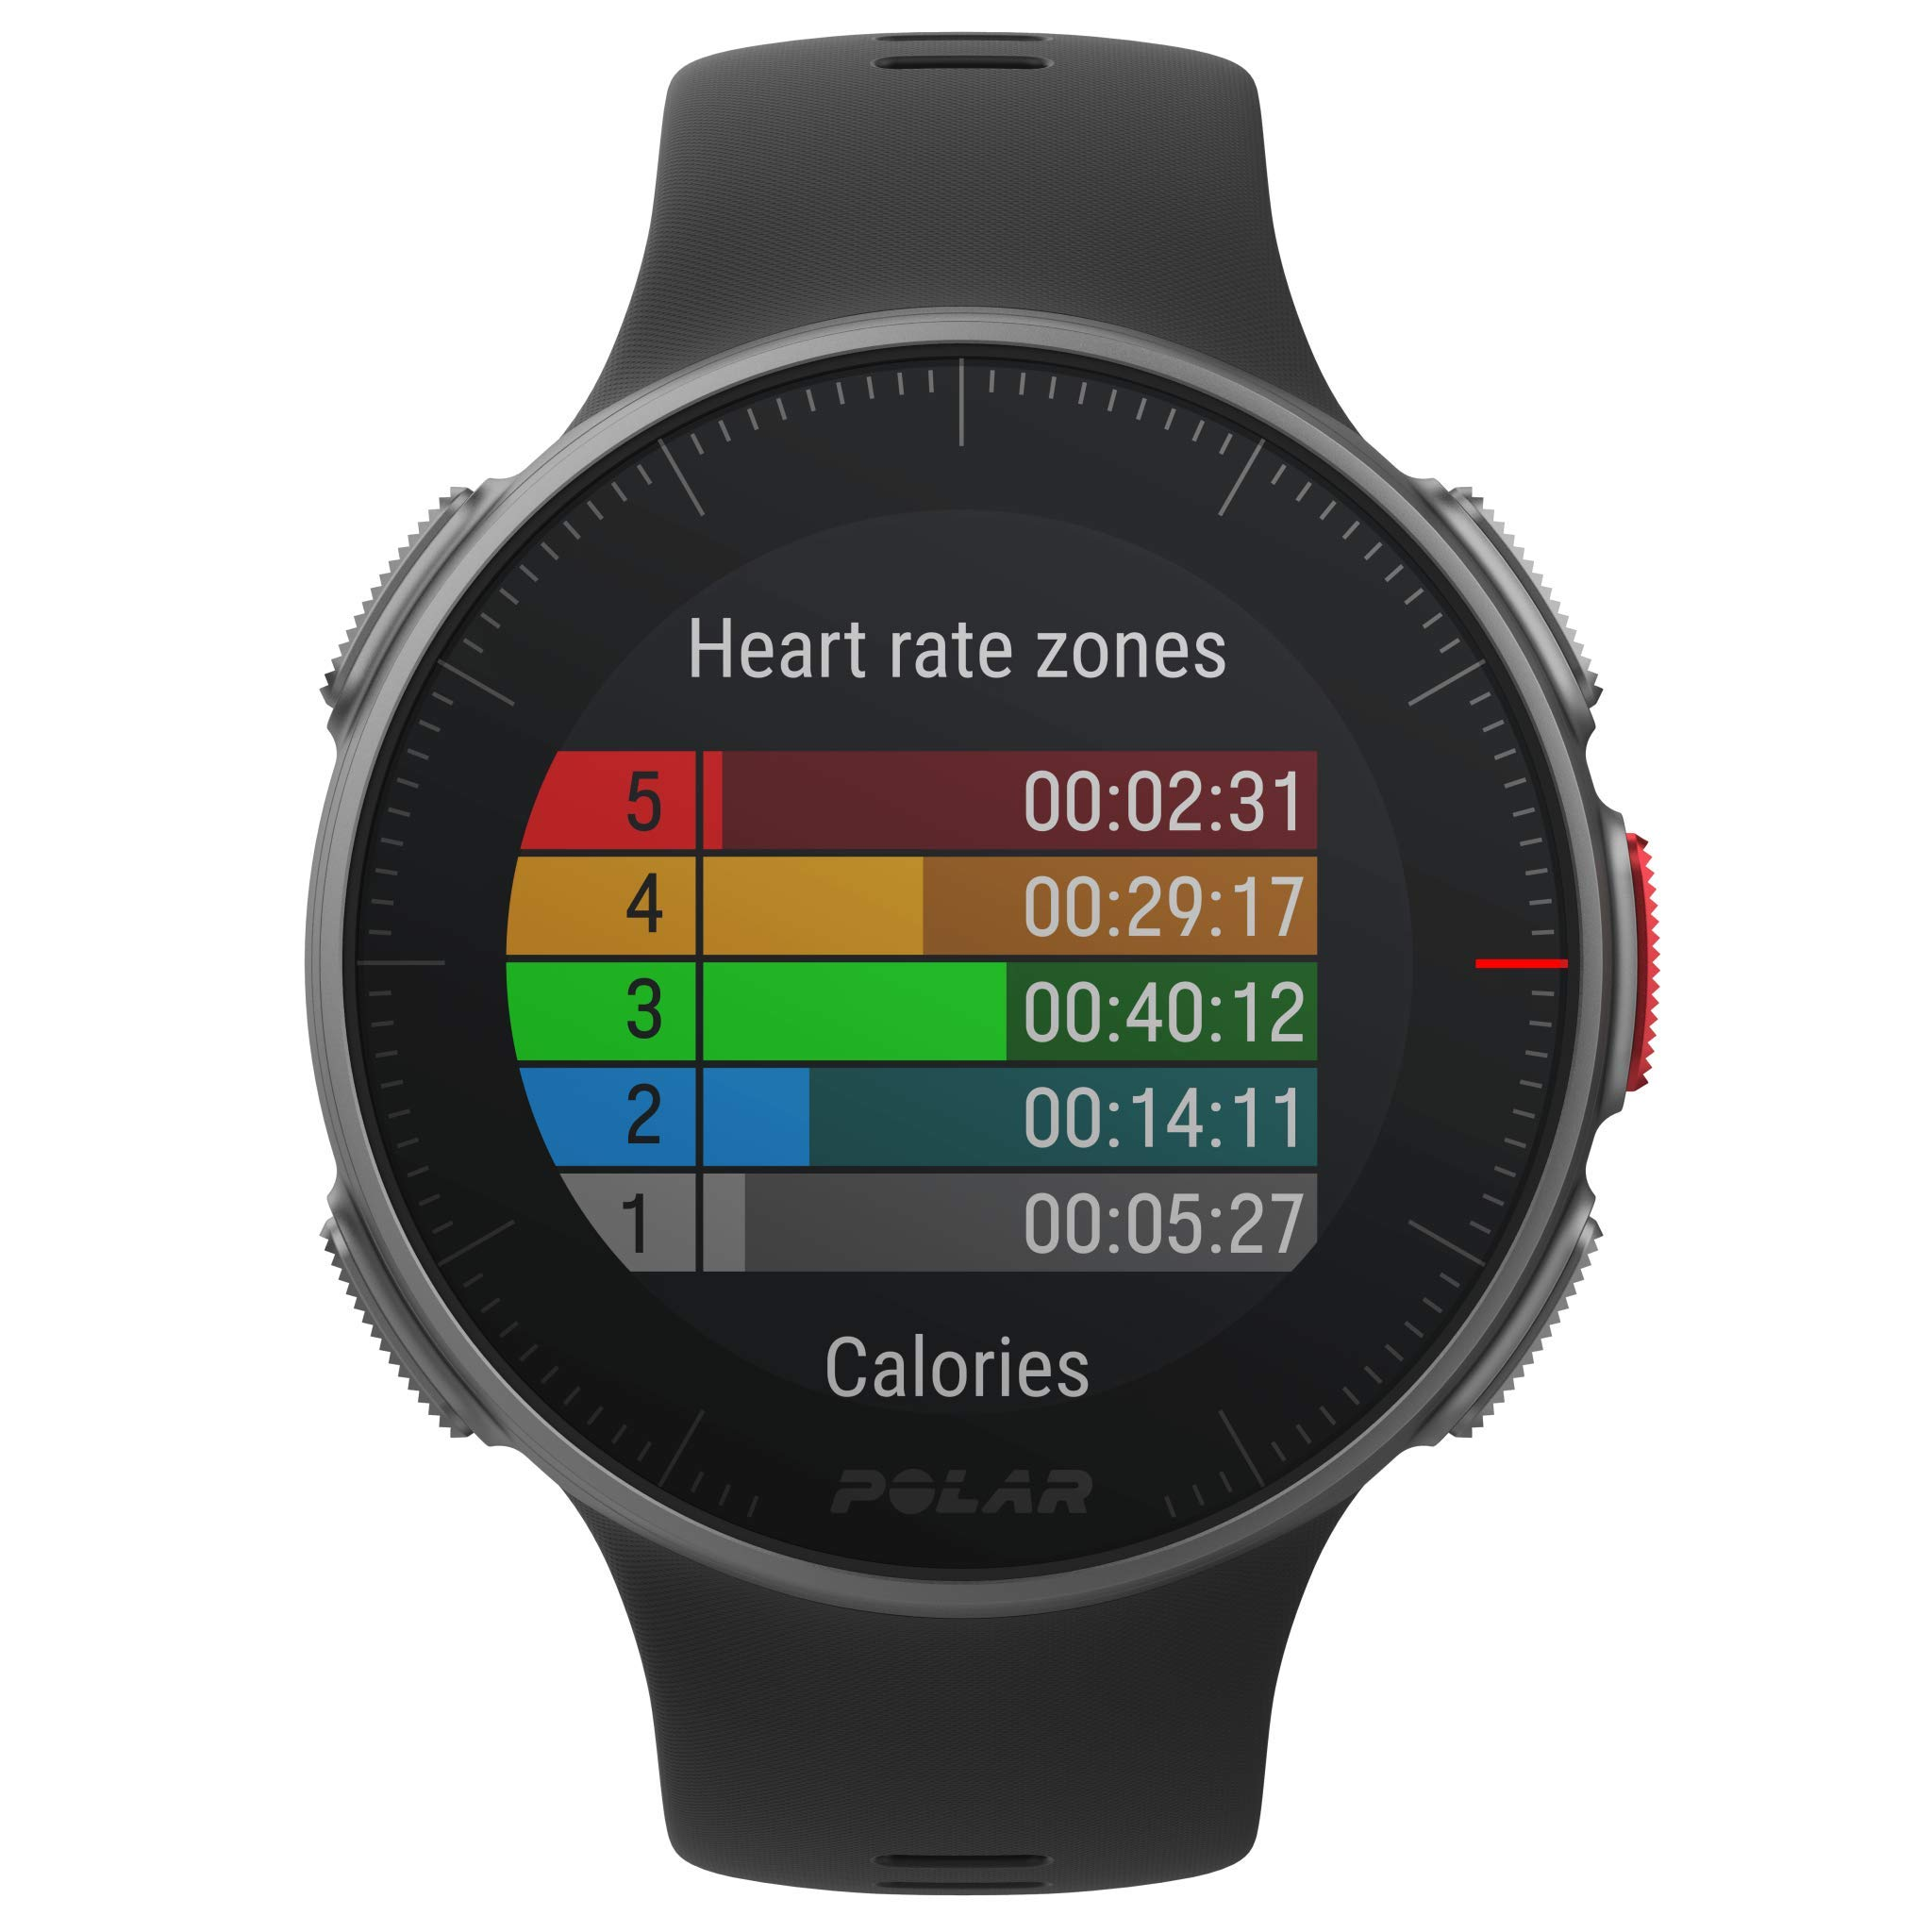 PlayBetter Polar Vantage V Pro (Black with H10 Heart Rate Sensor) Power Bundle Portable Charger & Screen Protectors | Multisport Watch | GPS & Barometer by PlayBetter (Image #2)